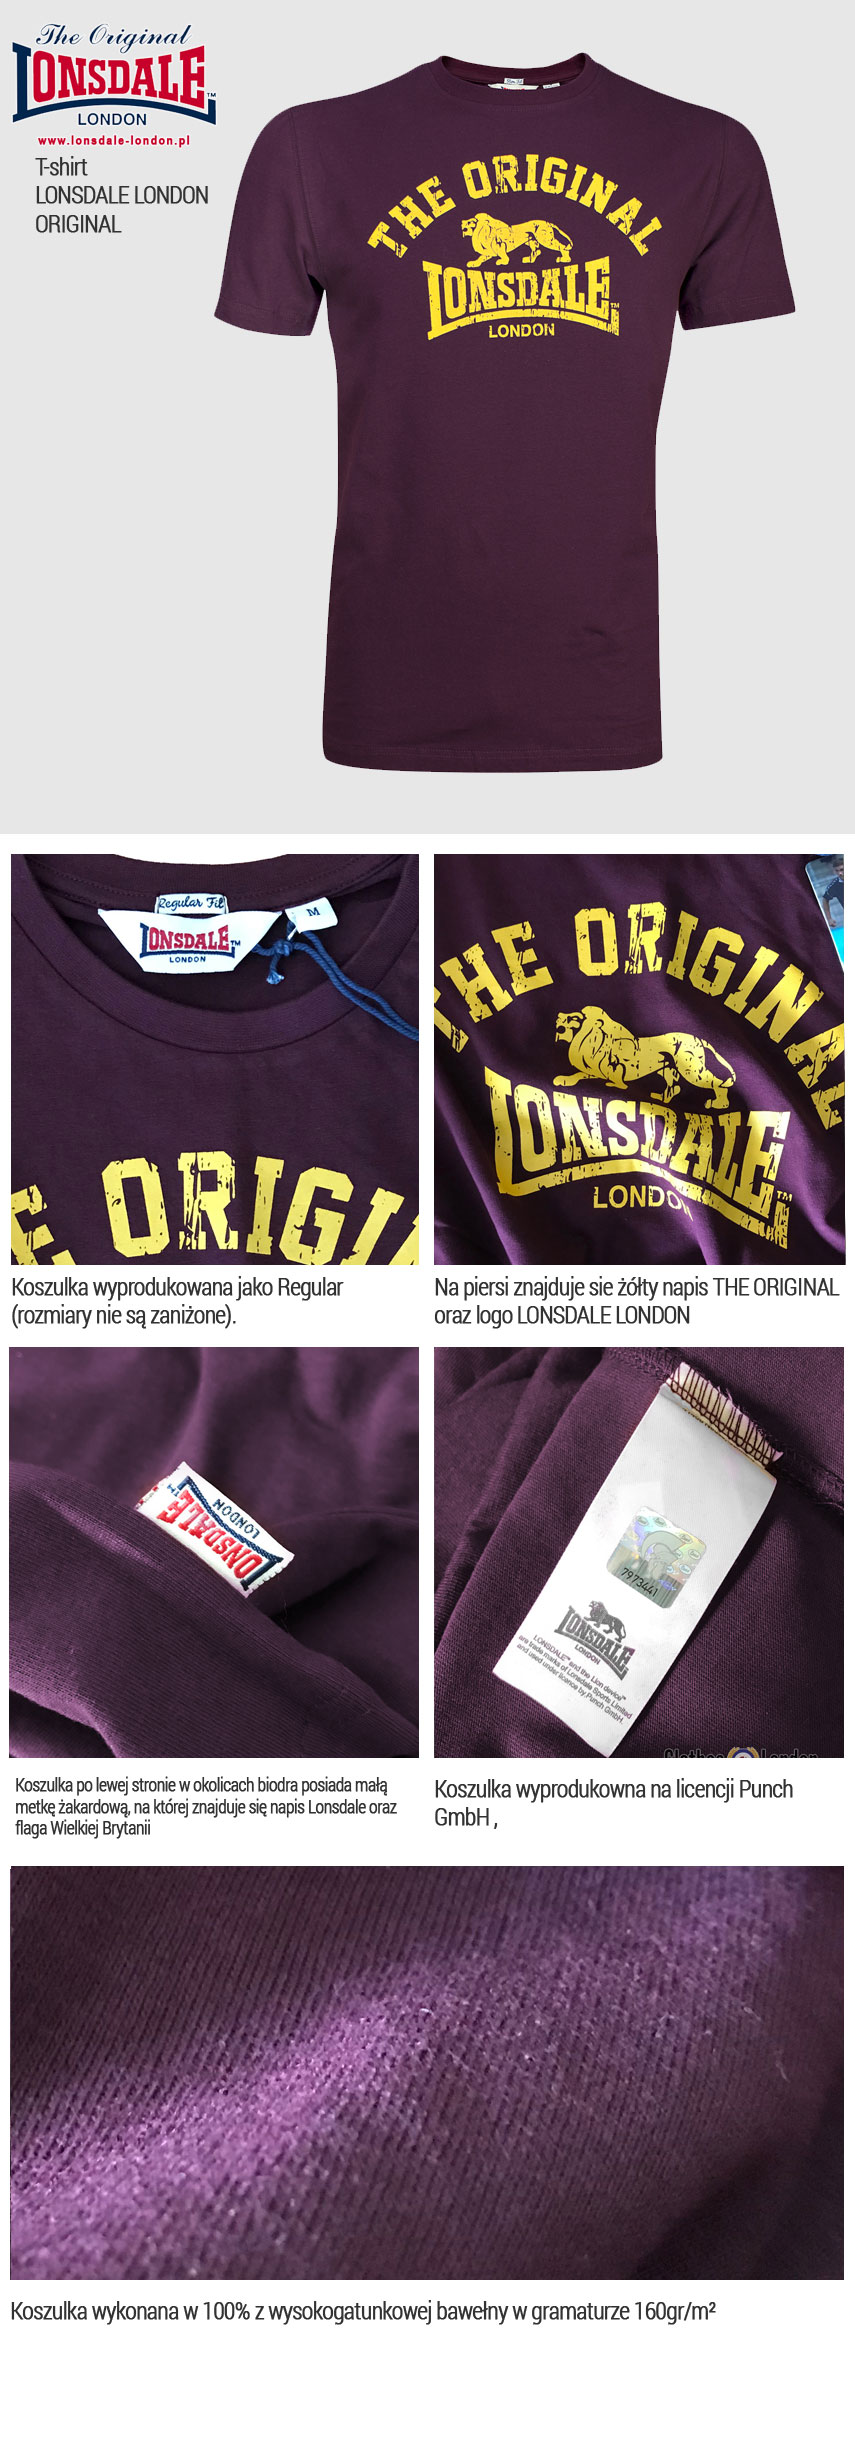 T-shirt LONSDALE LONDON ORIGINAL Bordowy